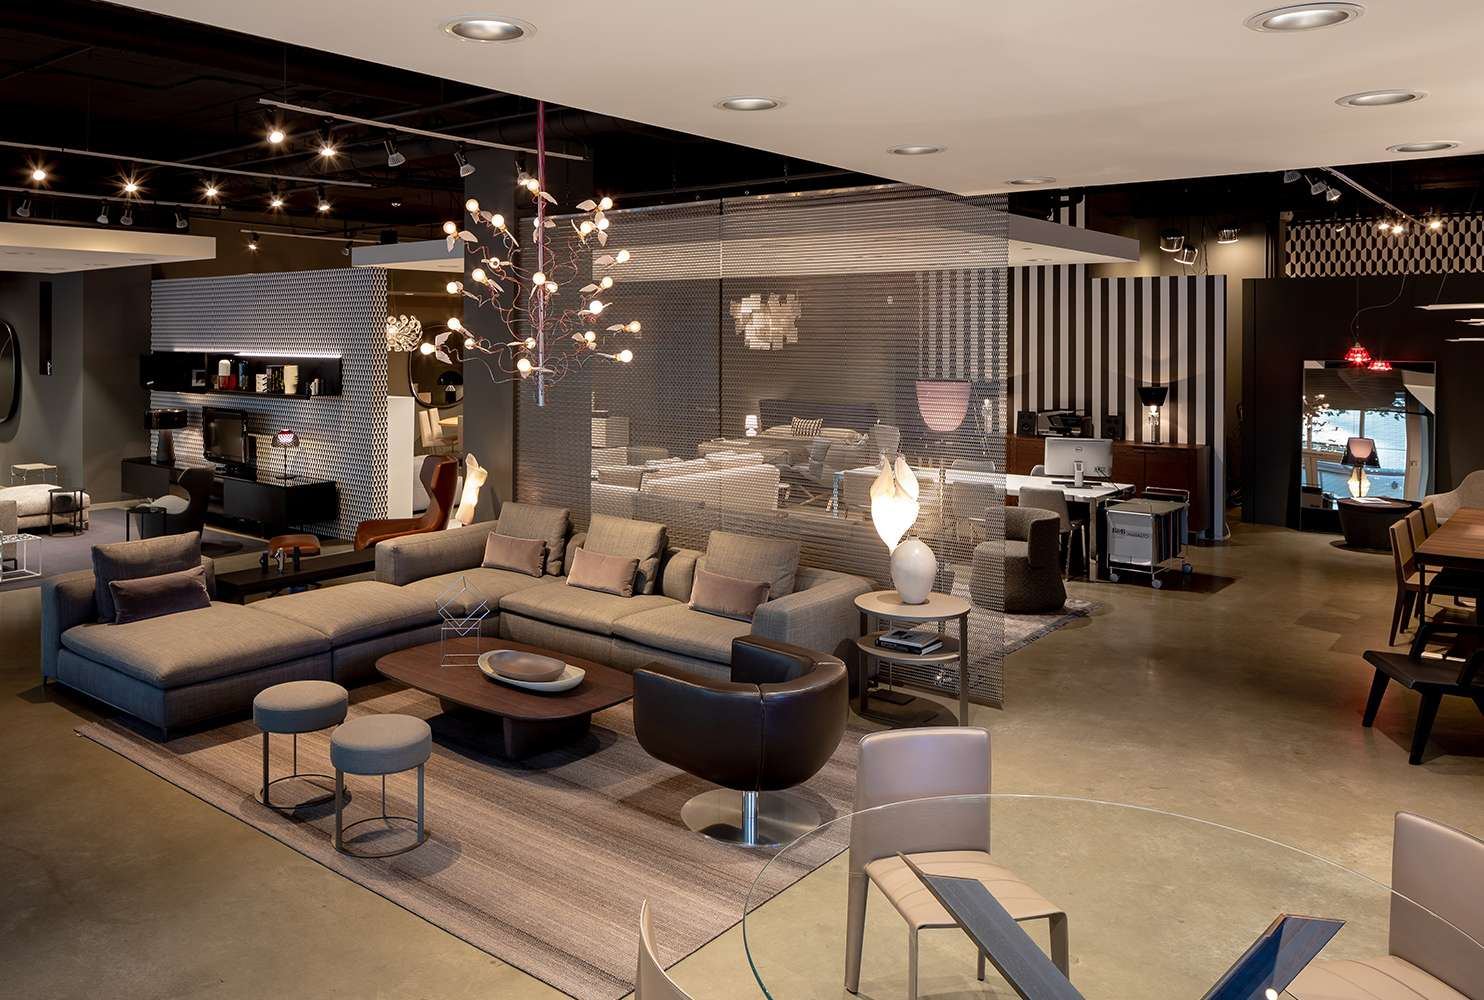 The Top Furniture Shops & Showrooms In Seattle_7 showrooms in seattle The Top Furniture Shops & Showrooms In Seattle The Top Furniture Shops Showrooms In Seattle 7